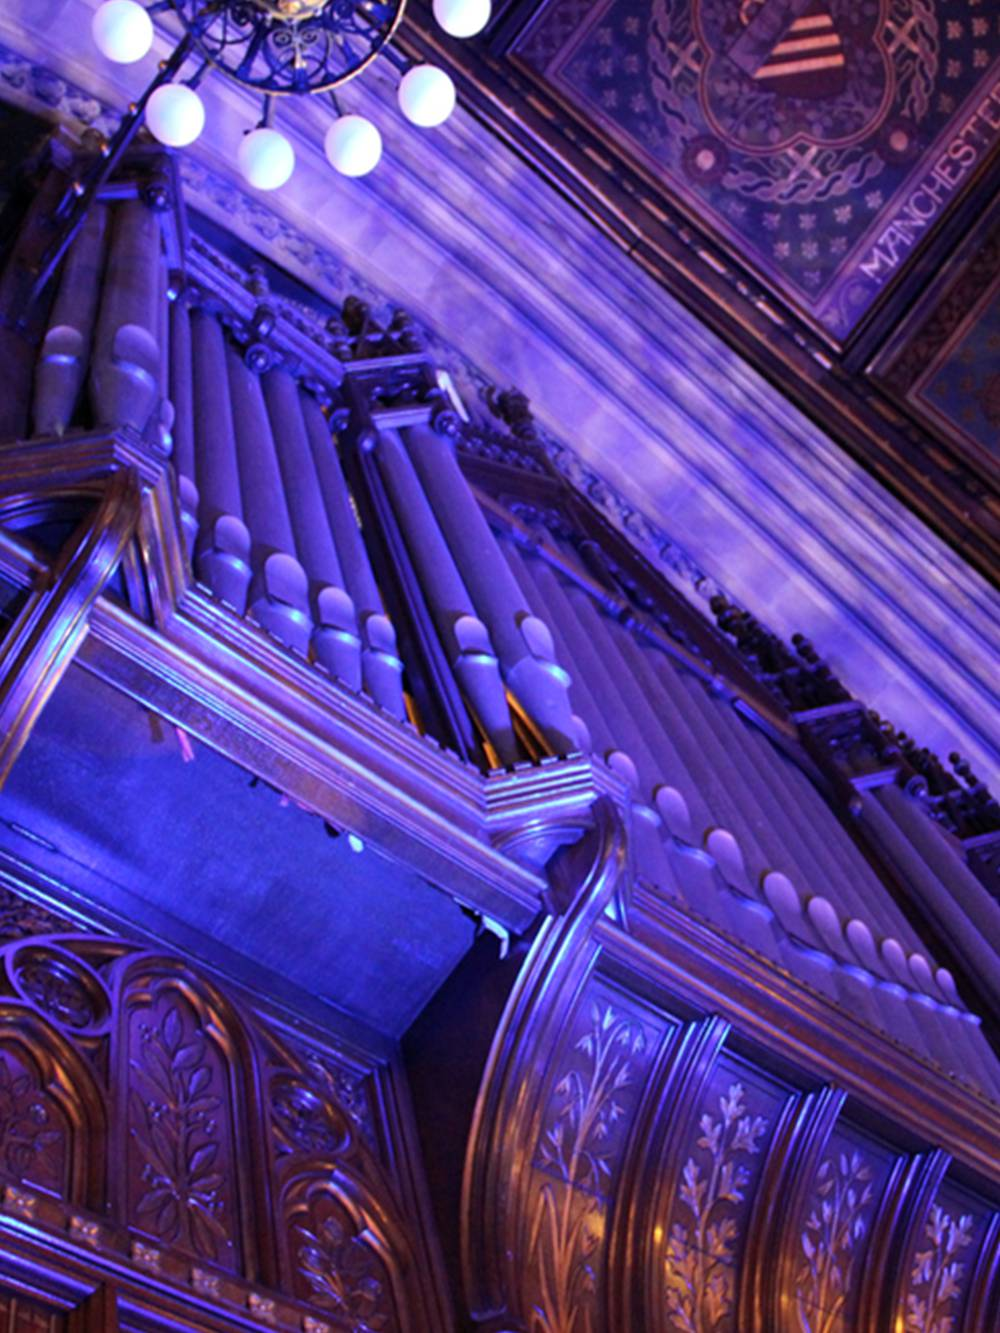 The organ pipes lit using patterns projected by moving lights with gobos and washed in colour with LED uplighters.